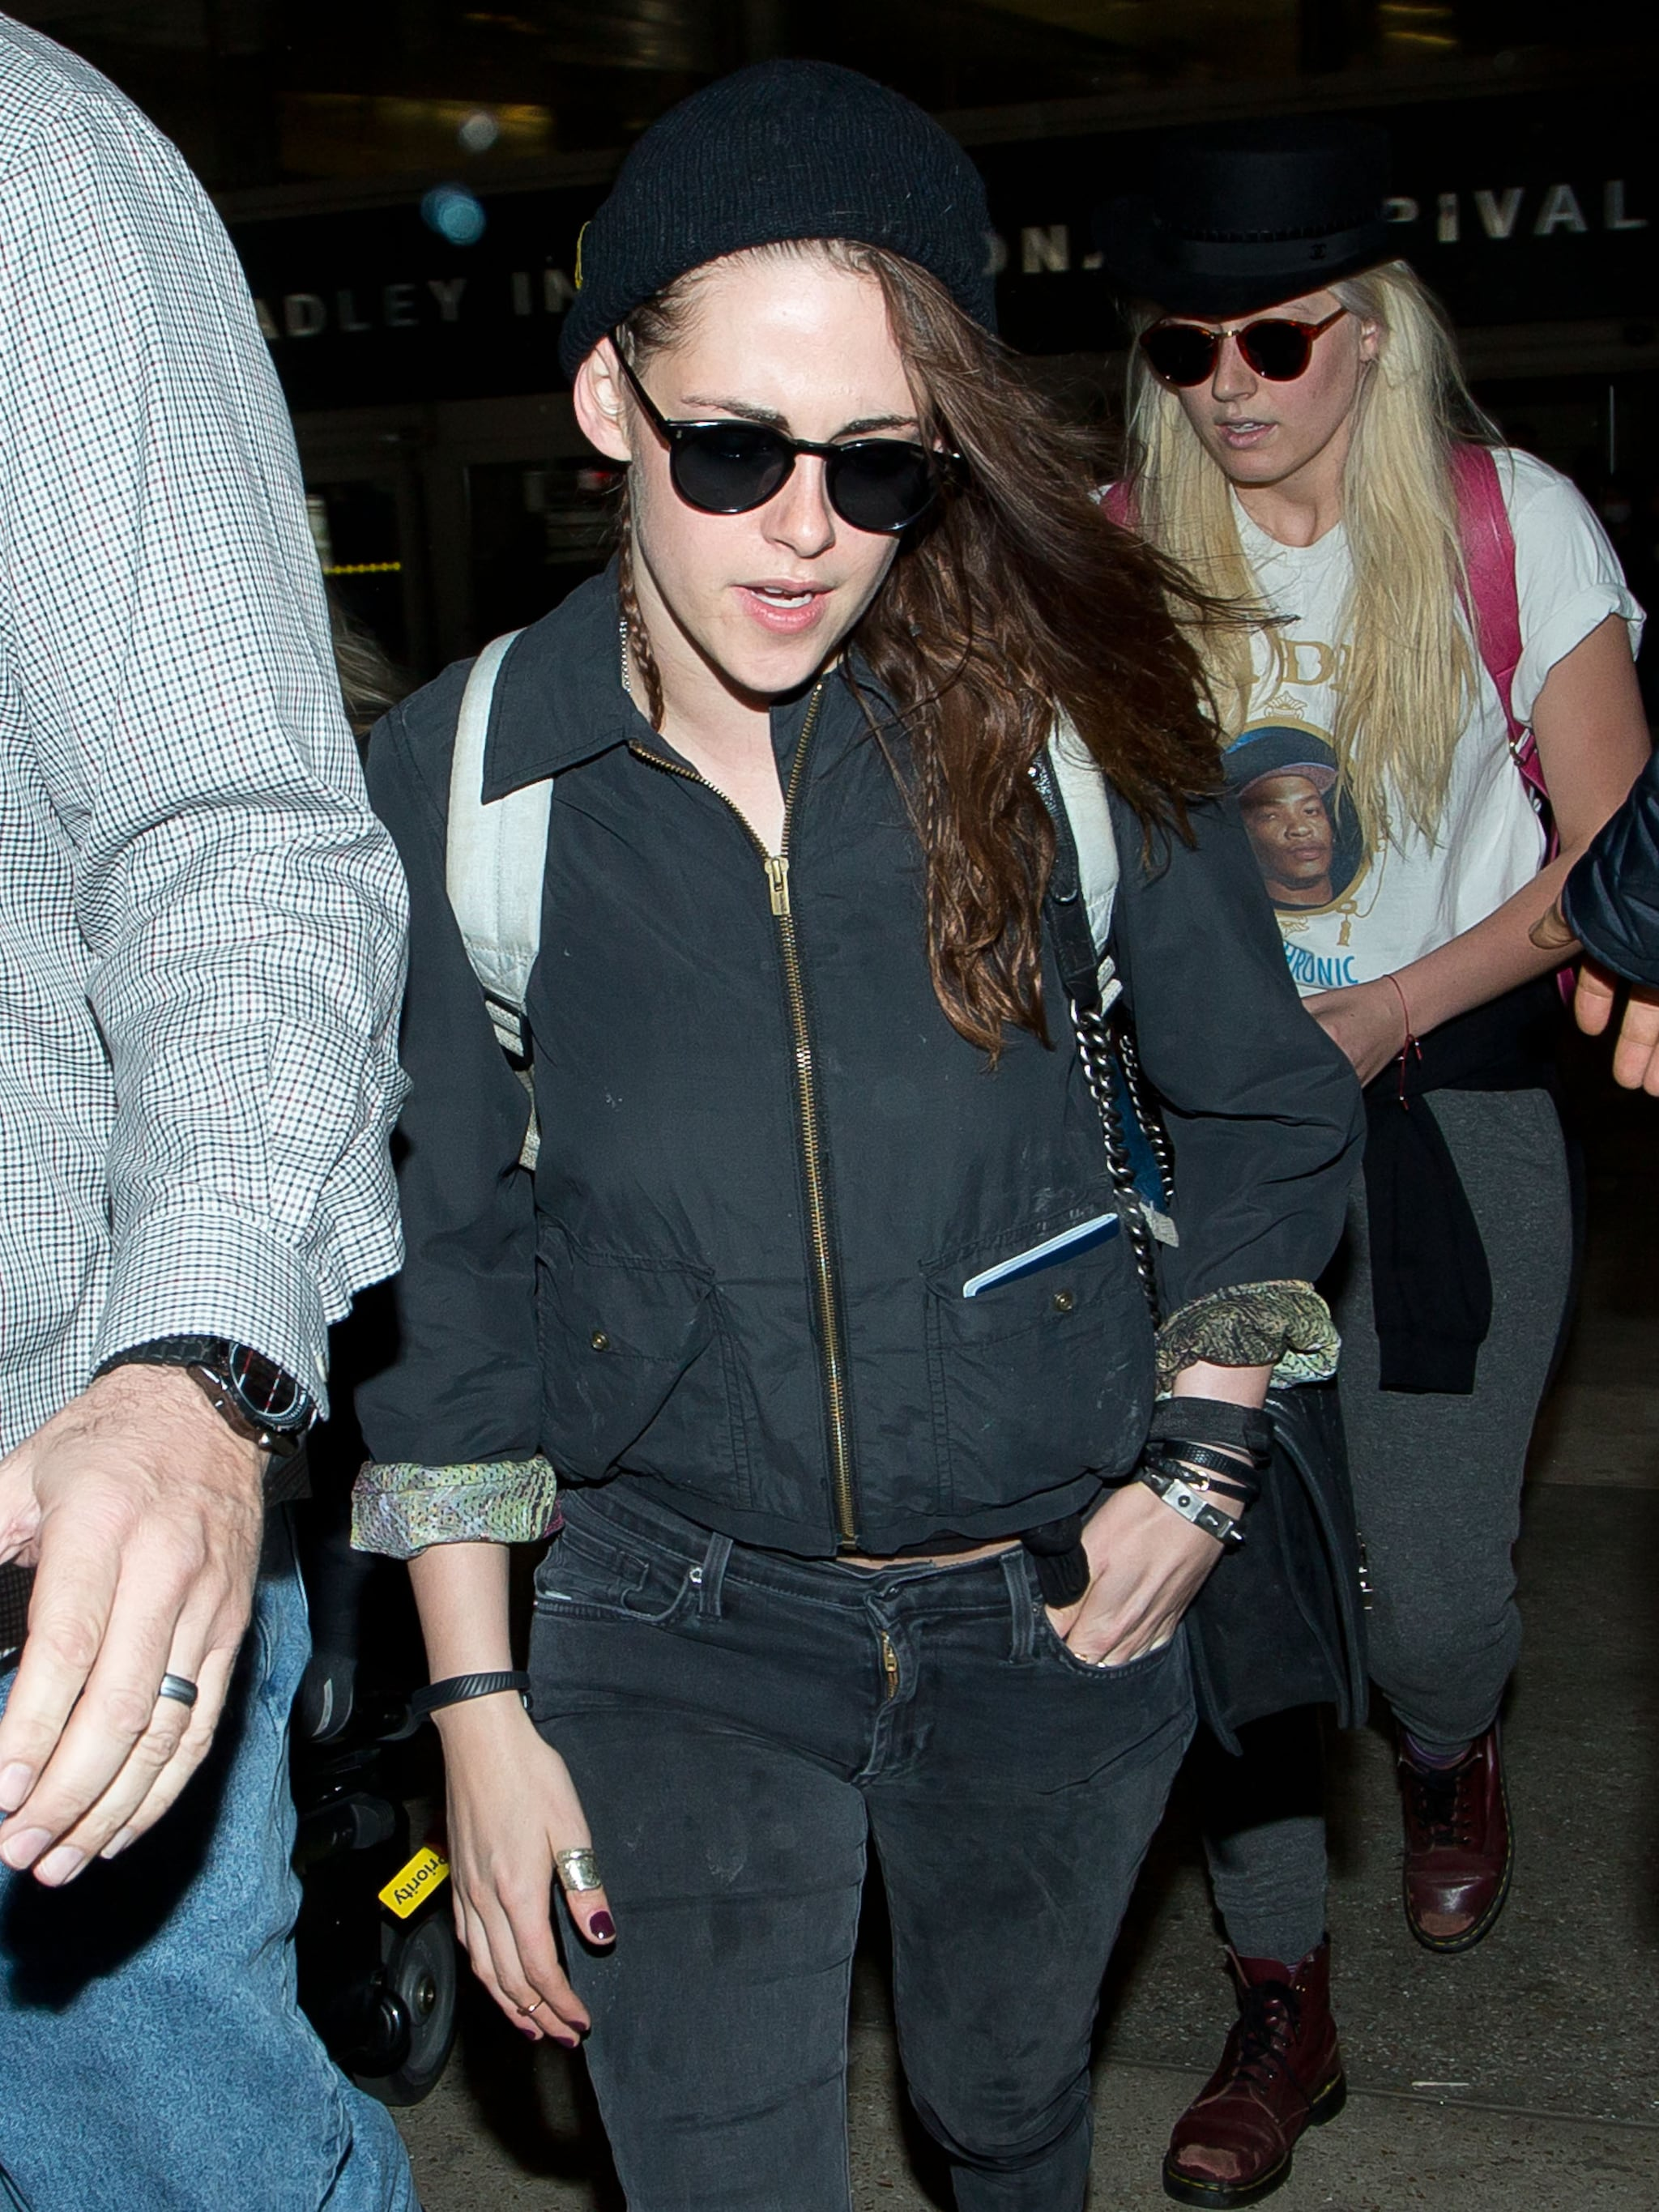 Kristen Stewart Wears Her Sunglasses at Night